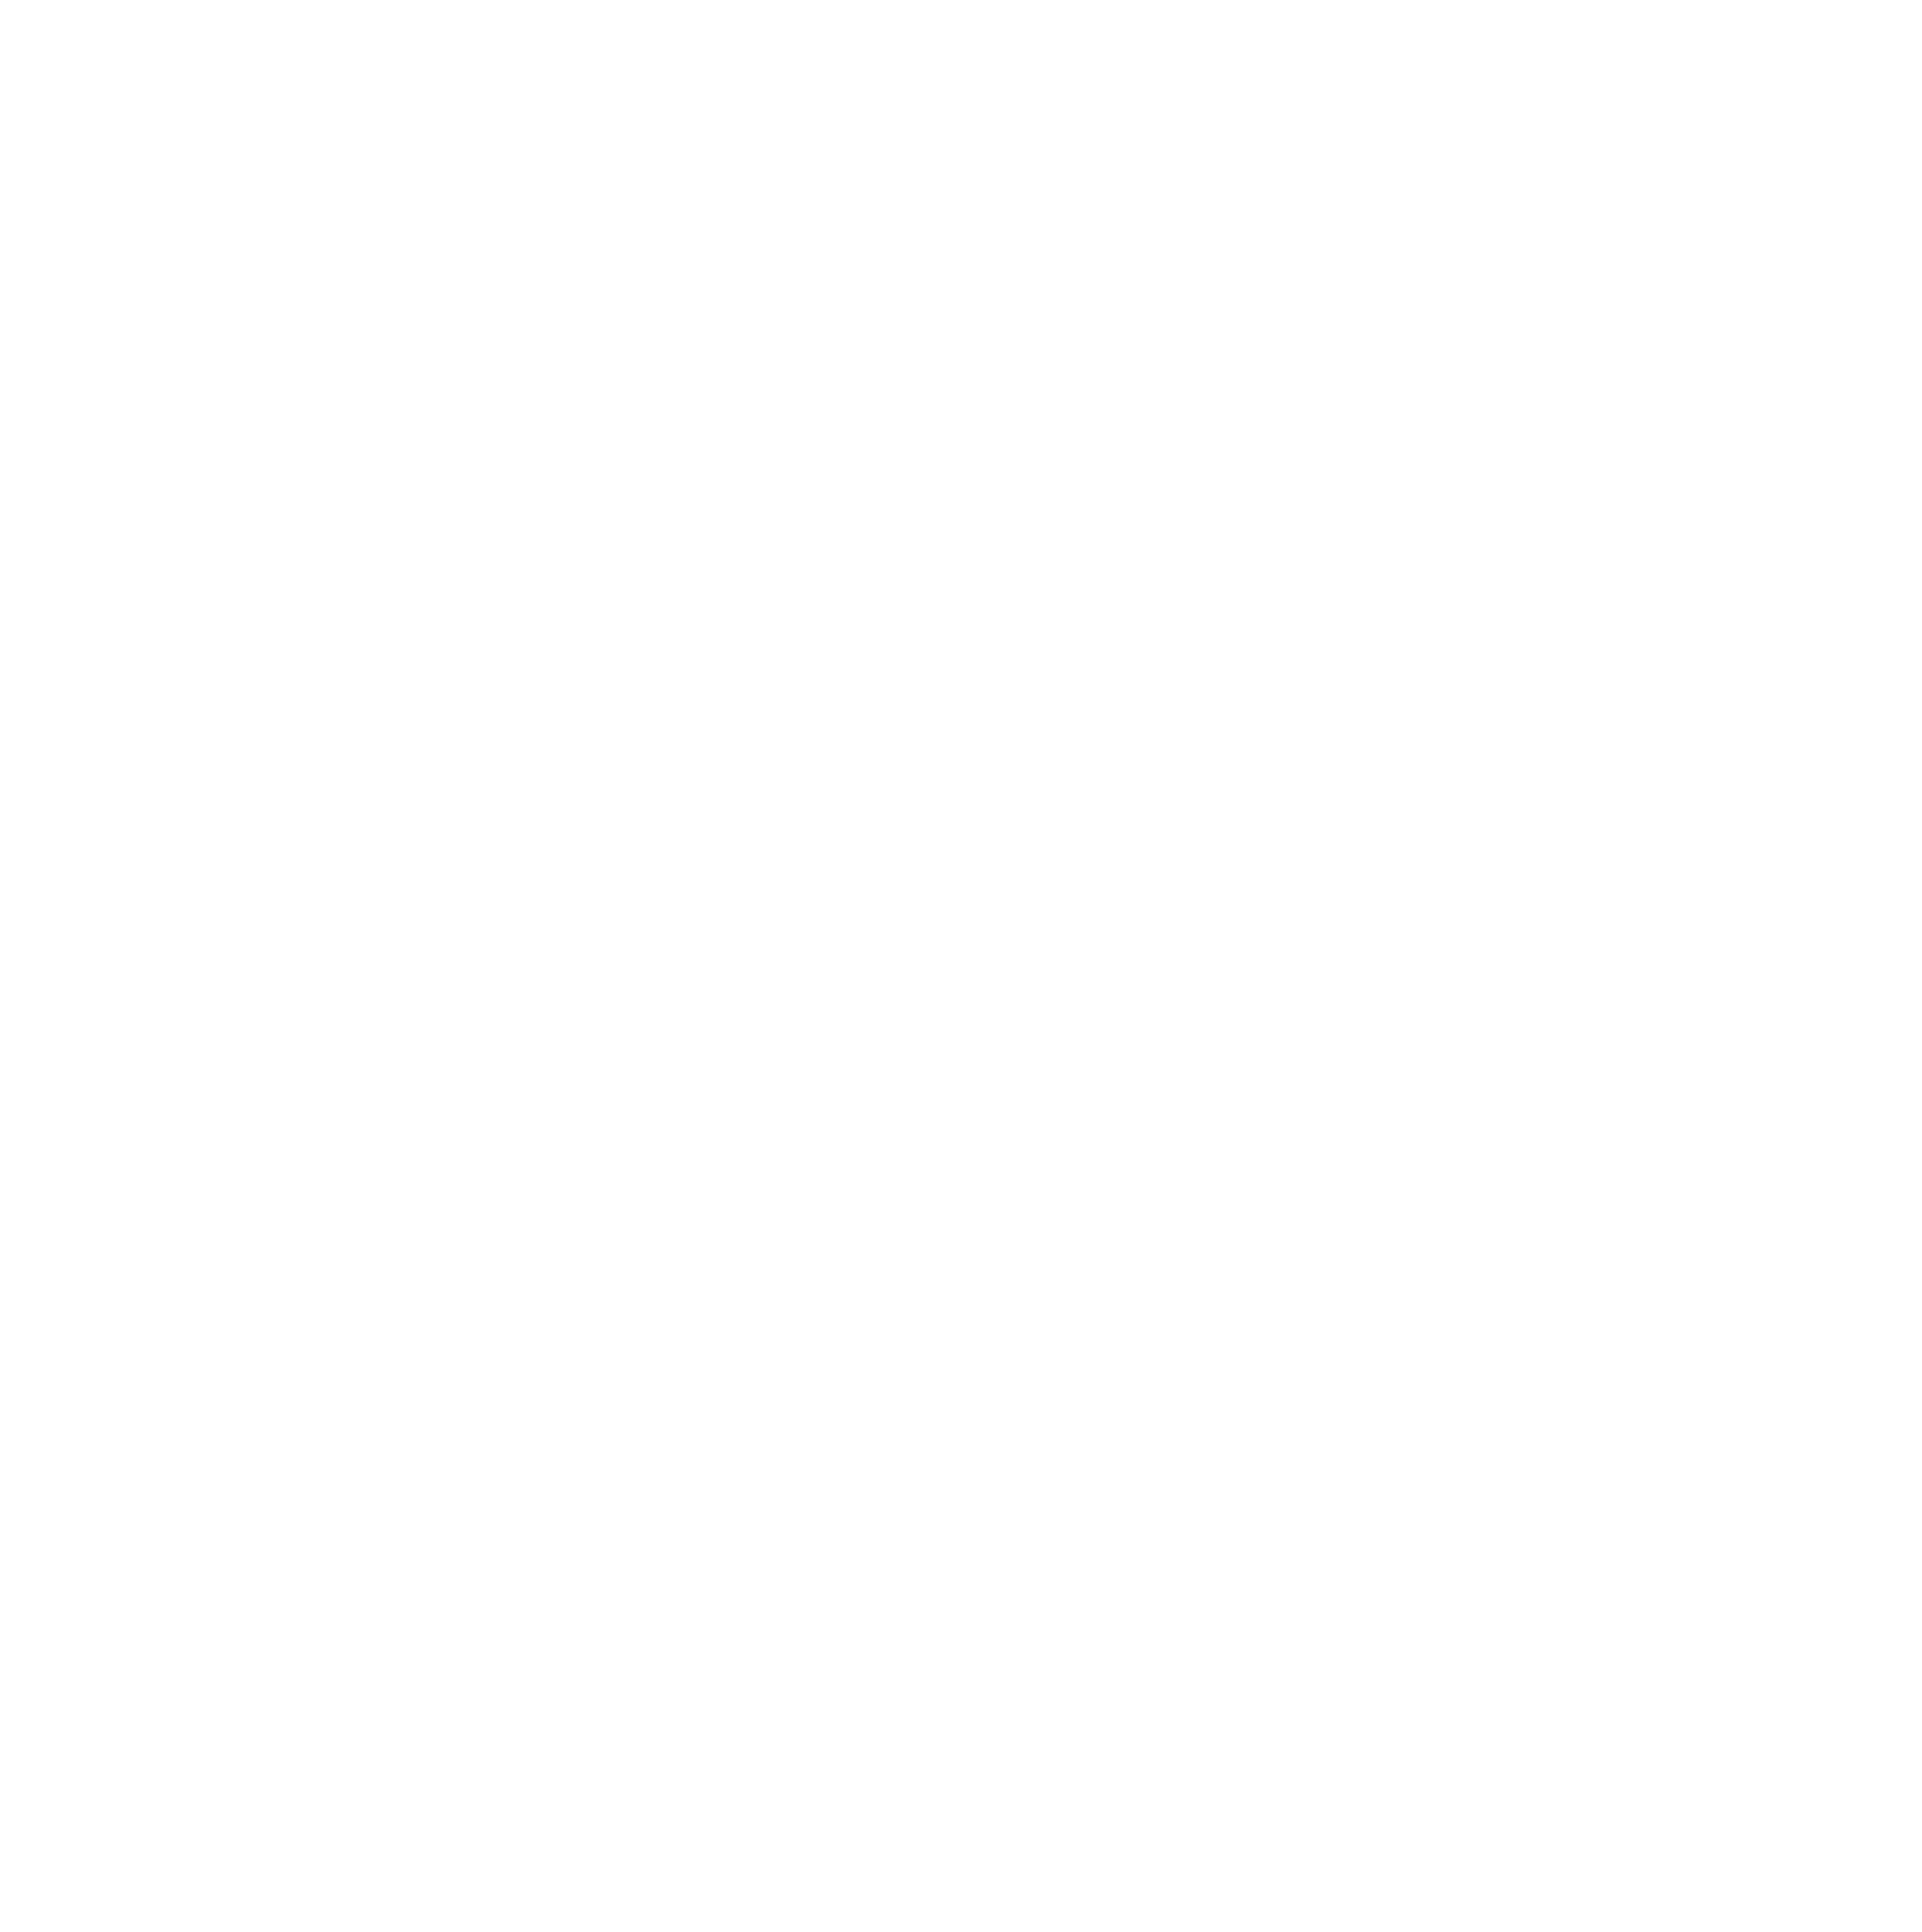 White Symmetry Black Pattern - White plane care health public welfare logo  3544*3562 transprent Png Free Download - Square, Angle, Symmetry. - Taking Care Of Plants PNG Black And White